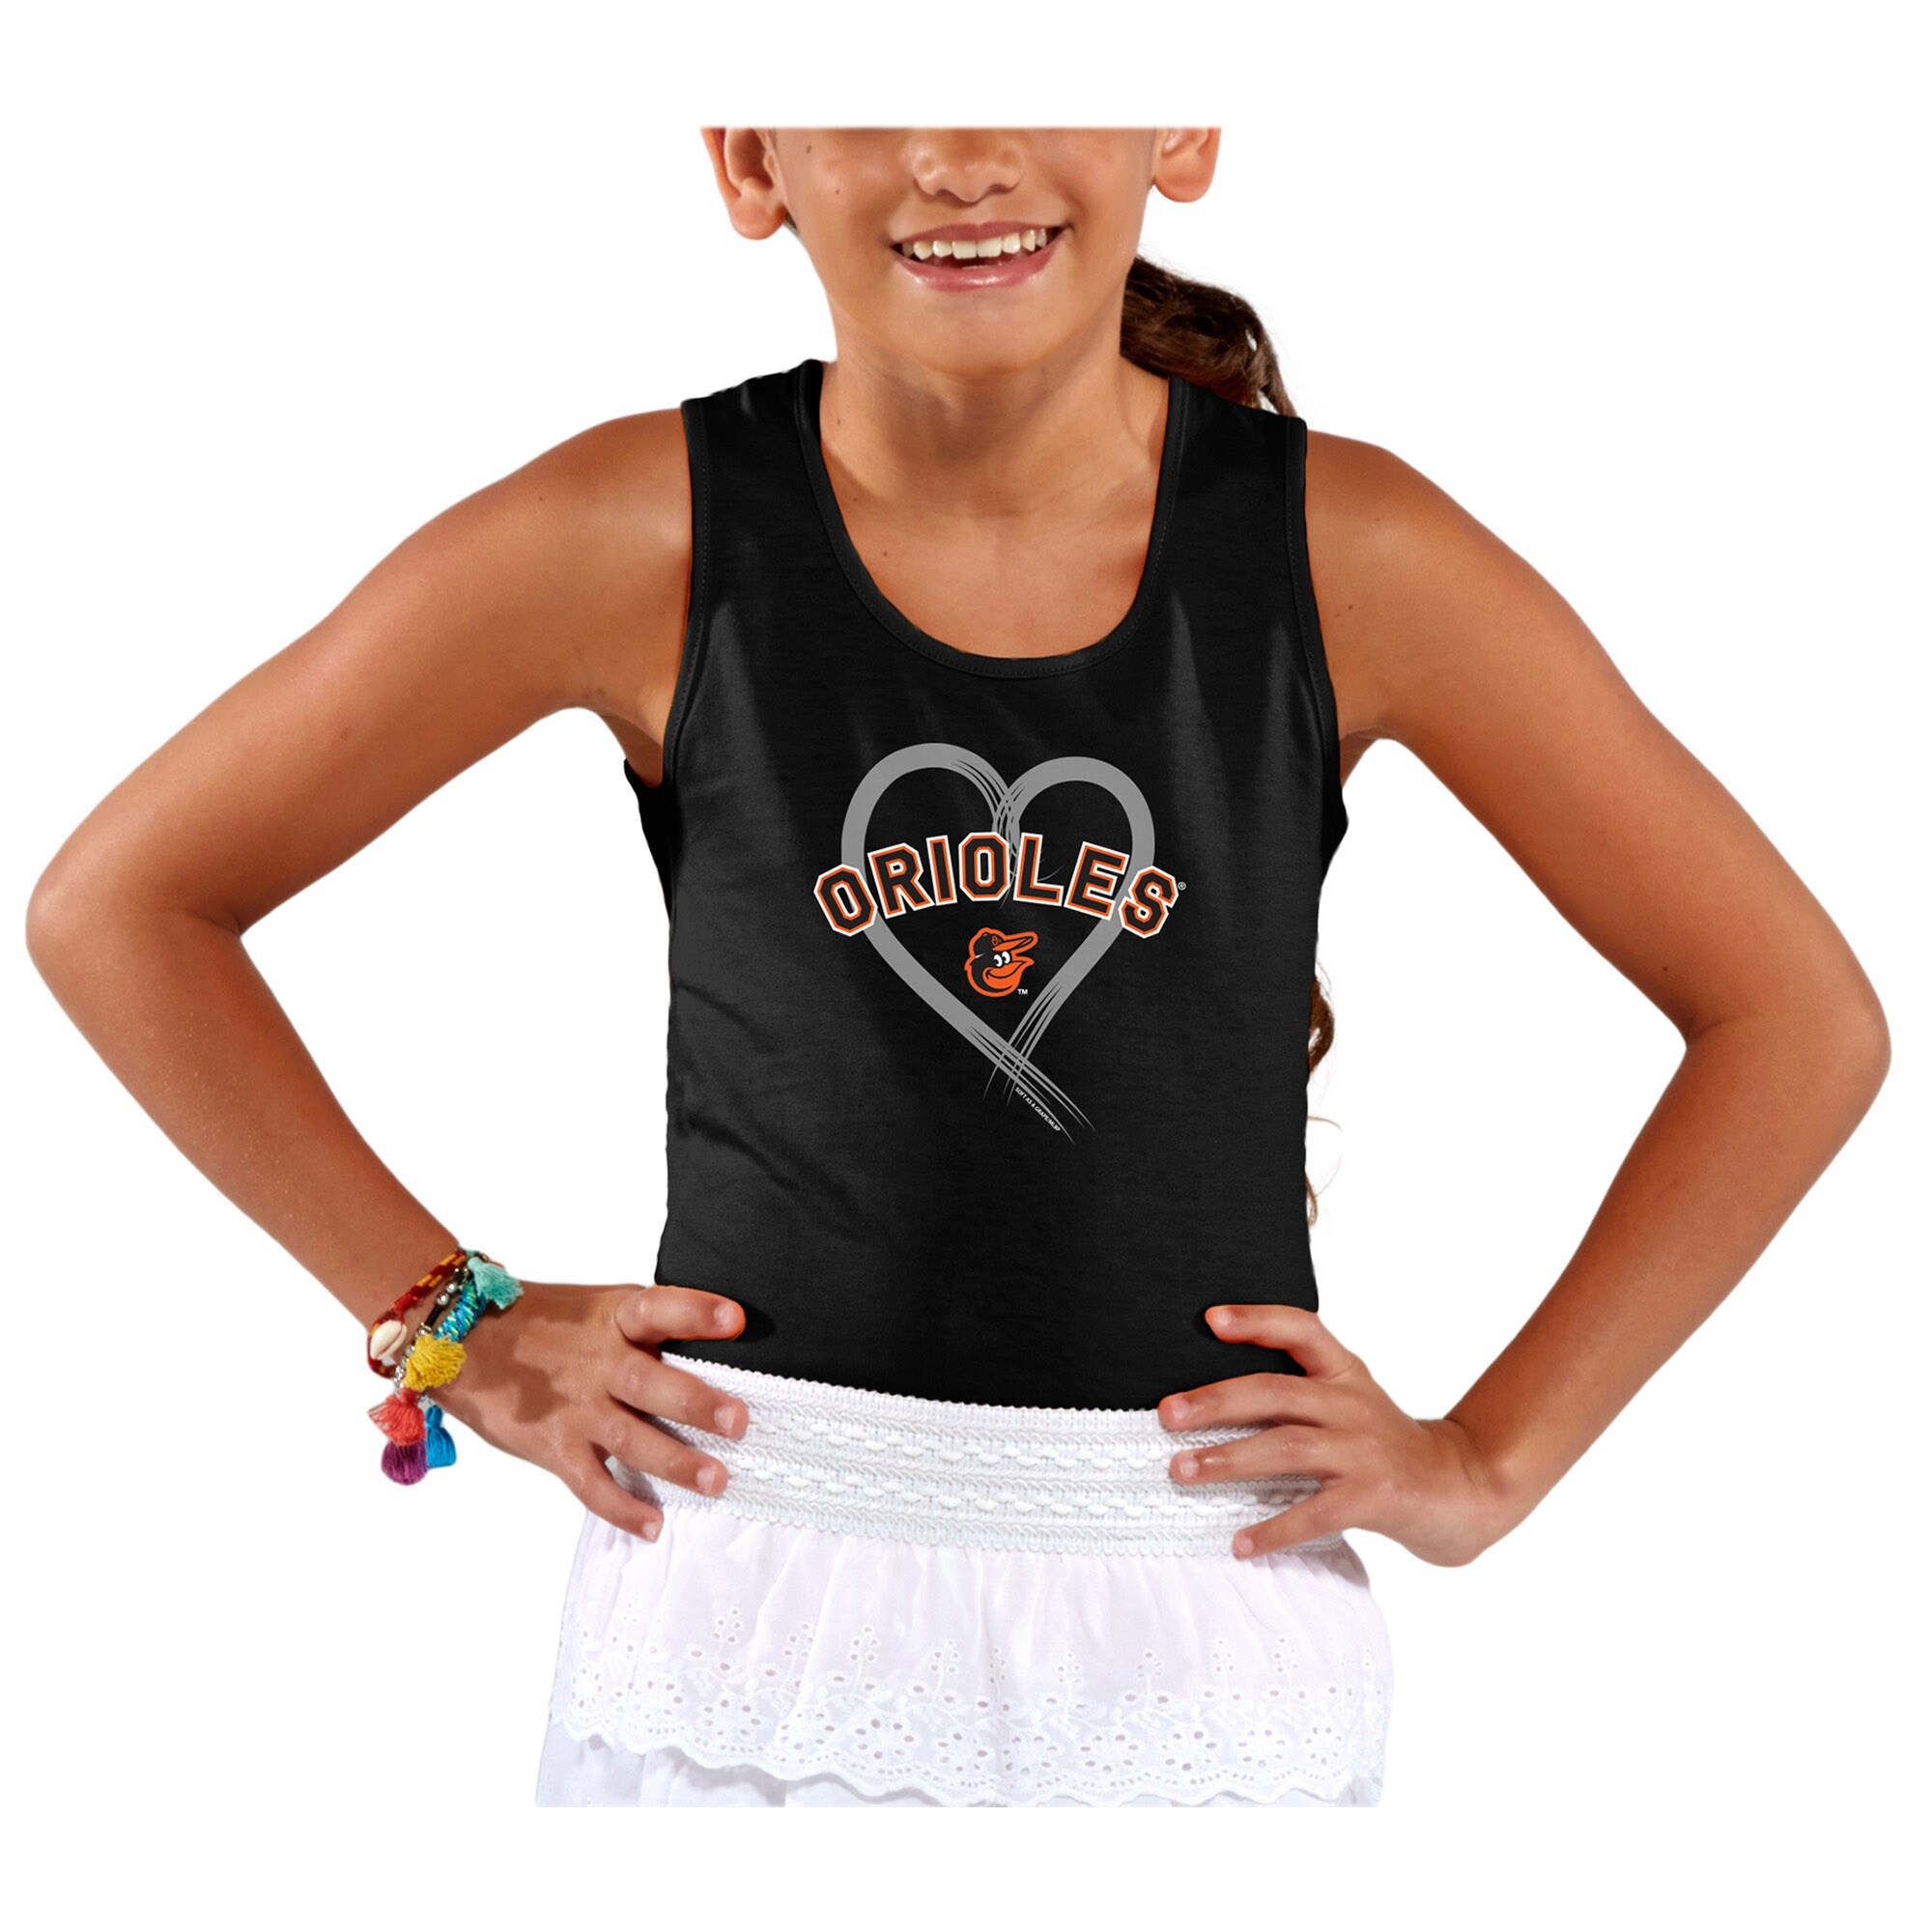 Baltimore Orioles Soft as a Grape Girls Youth Rally Tank Top - Black